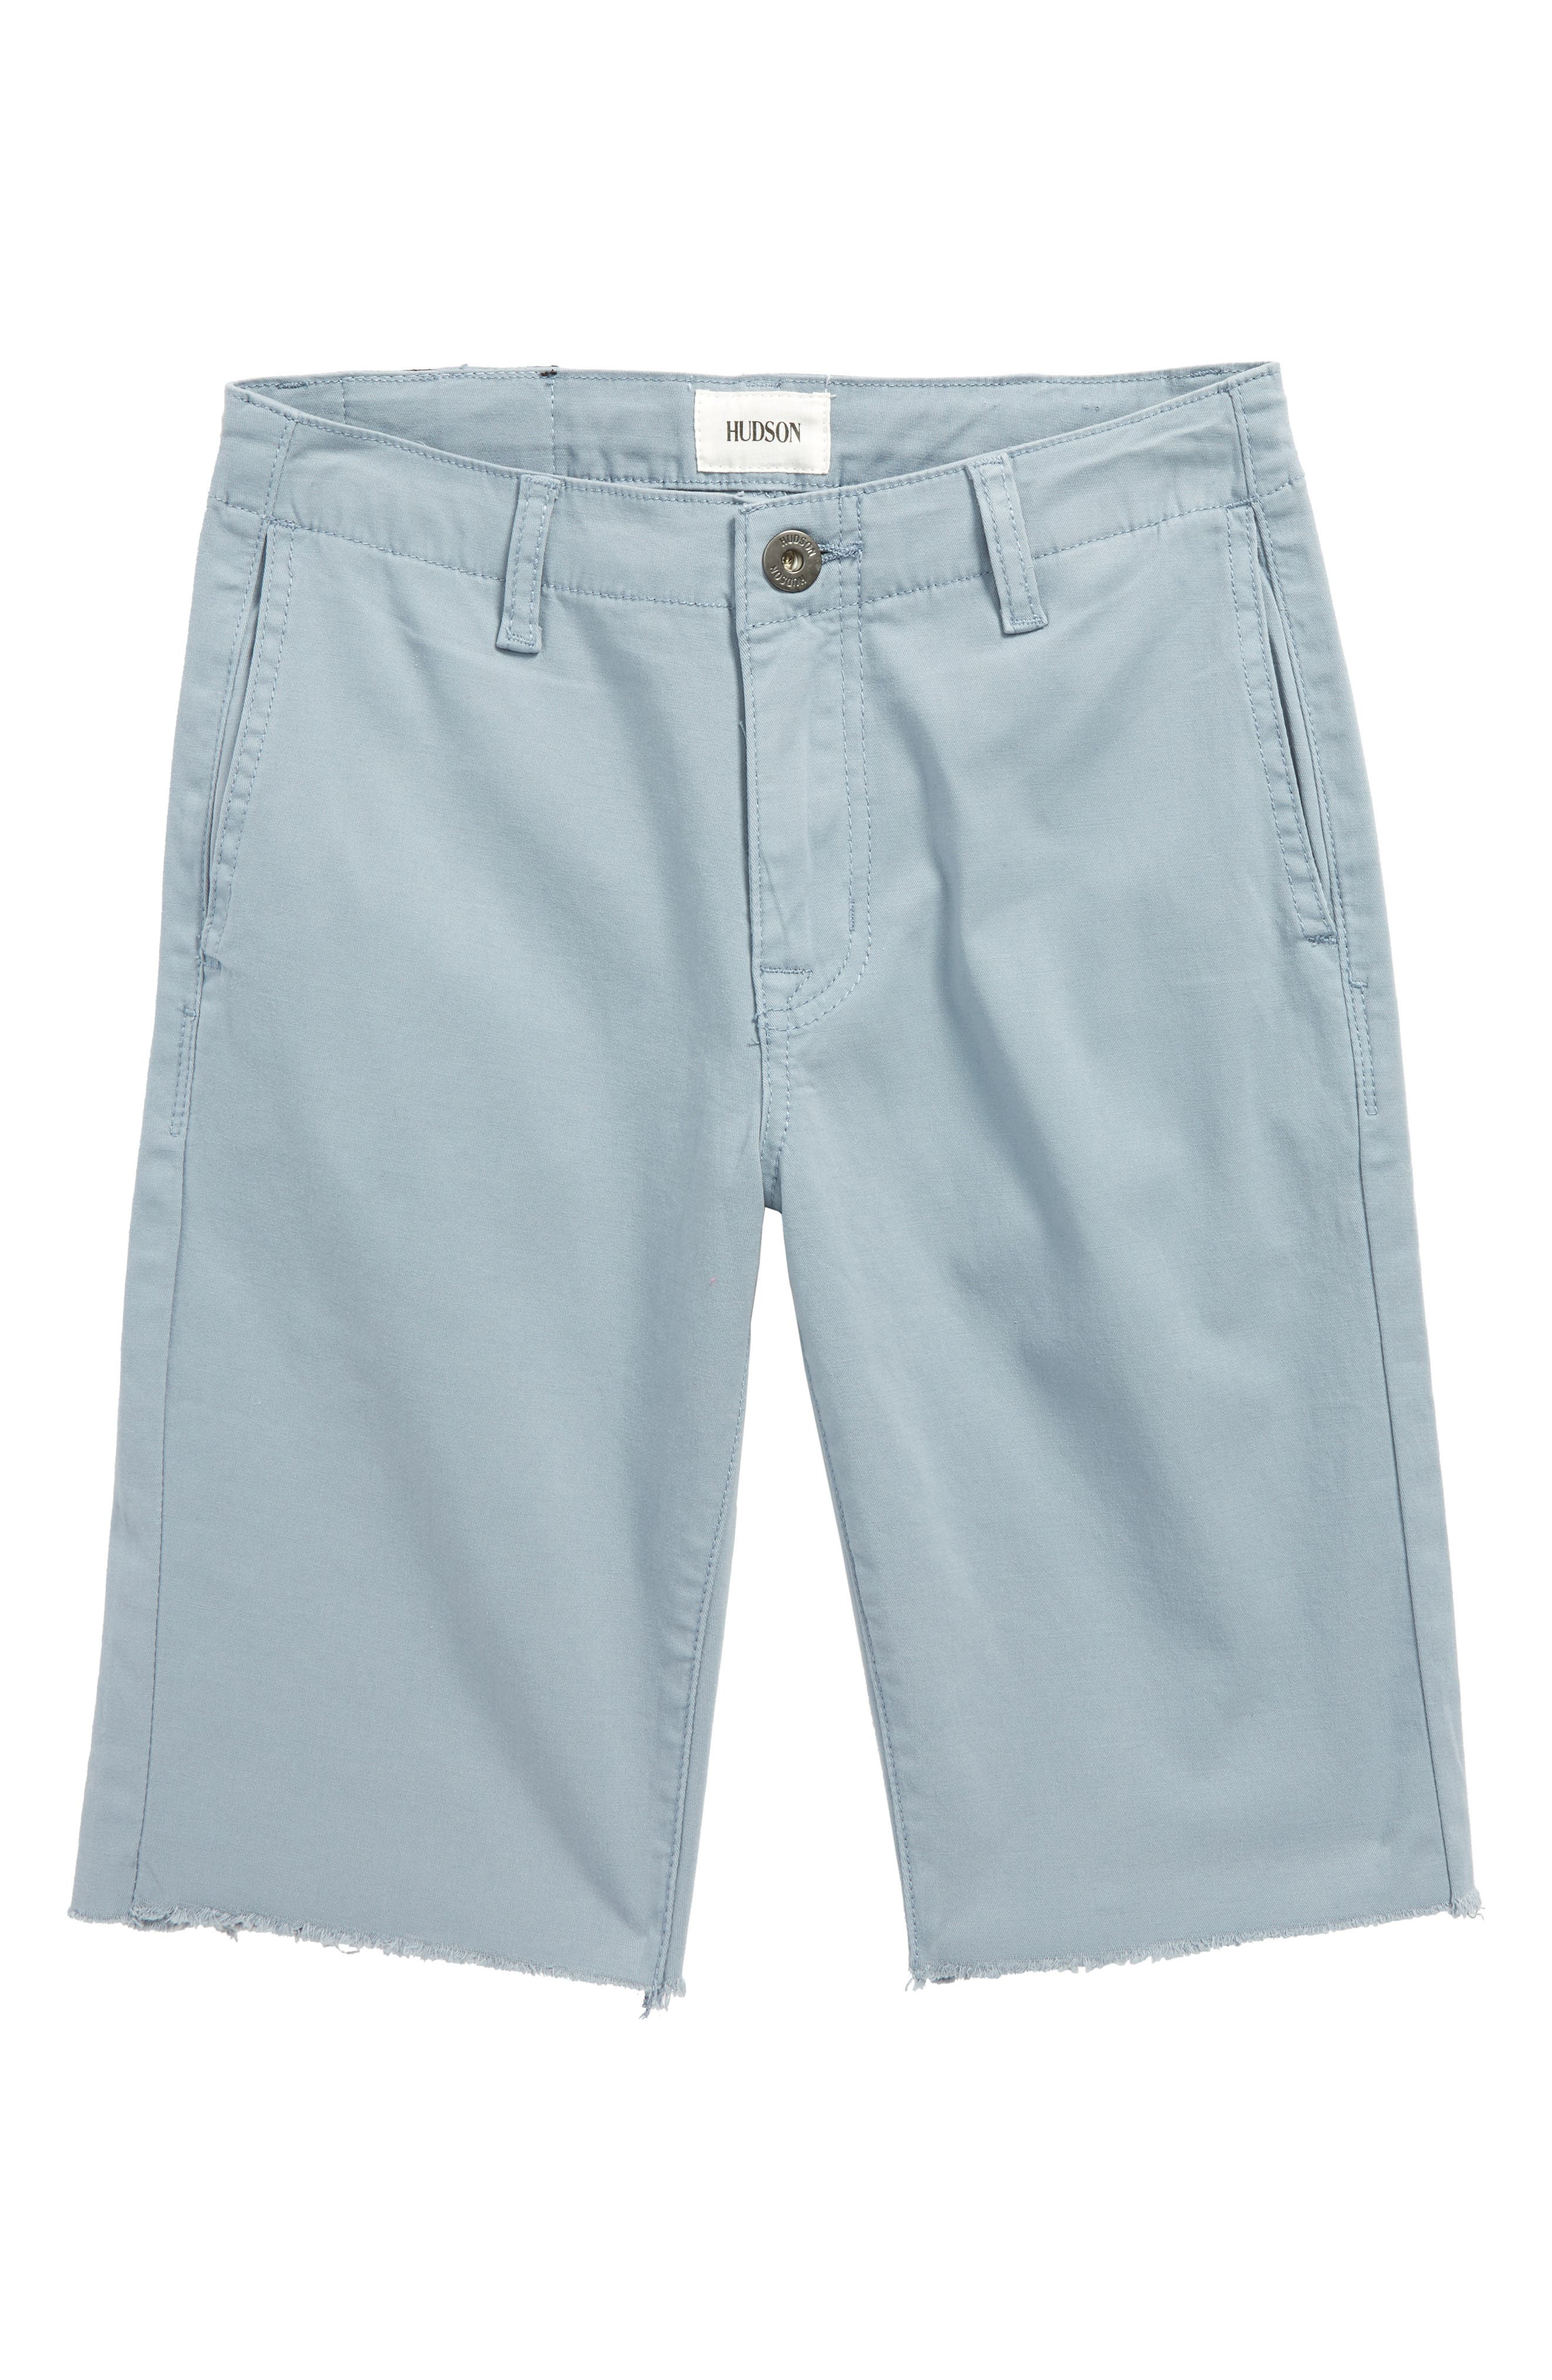 Beach Daze Shorts,                             Main thumbnail 1, color,                             492